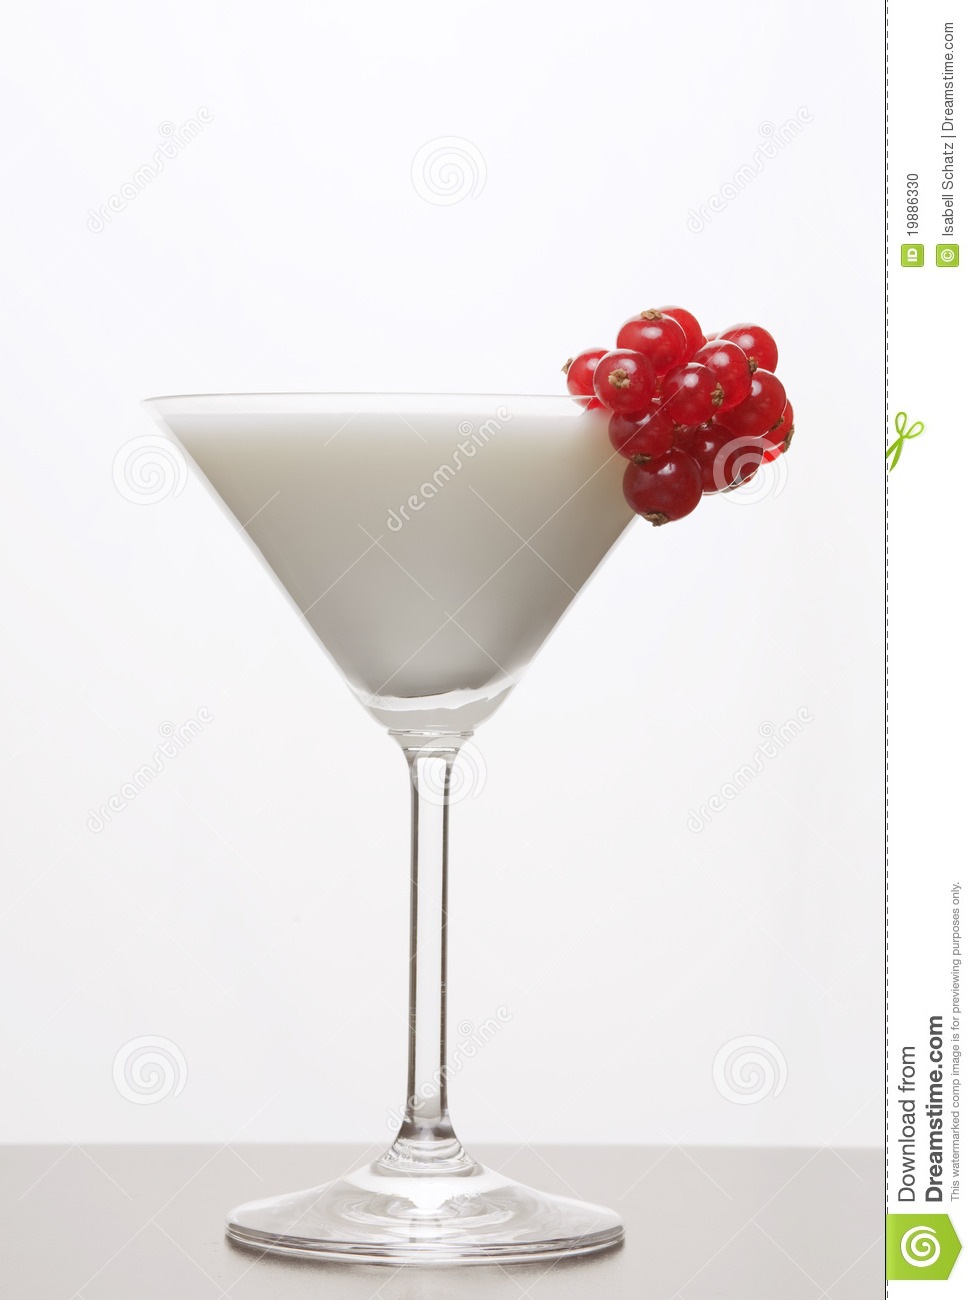 White Drink With Red Currants Stock Photo - Image: 19886330